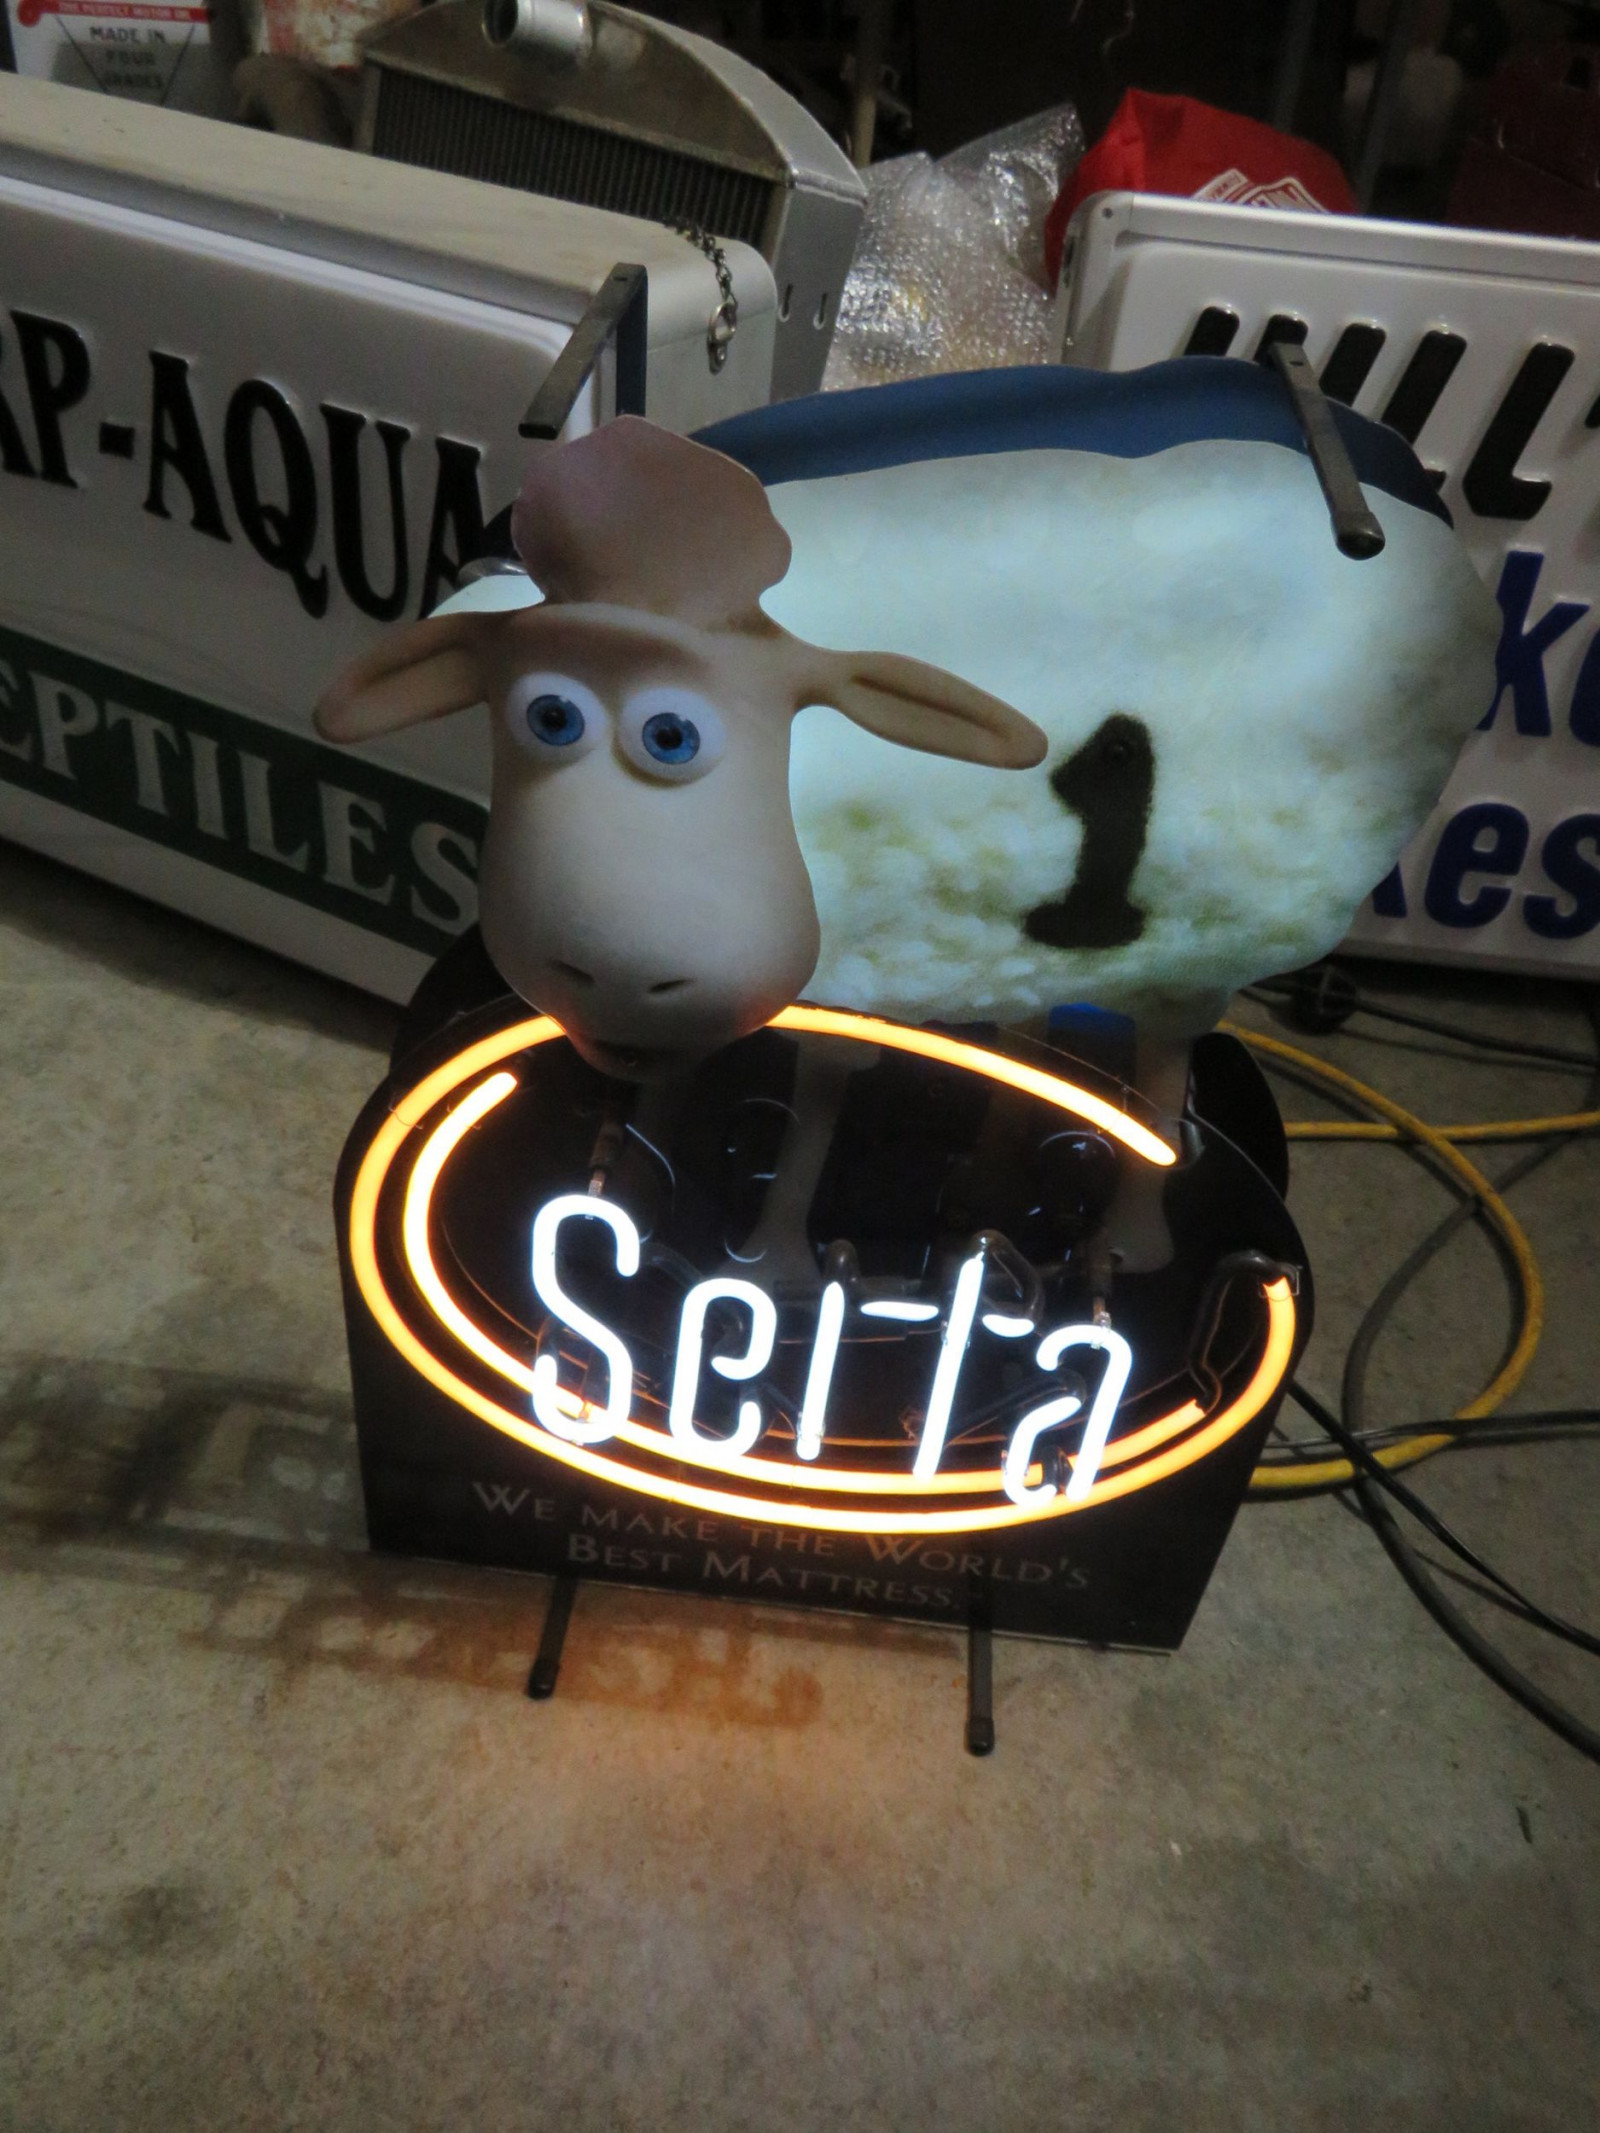 Serta Sheep Neon Stand UP Sign-Works - Image 1